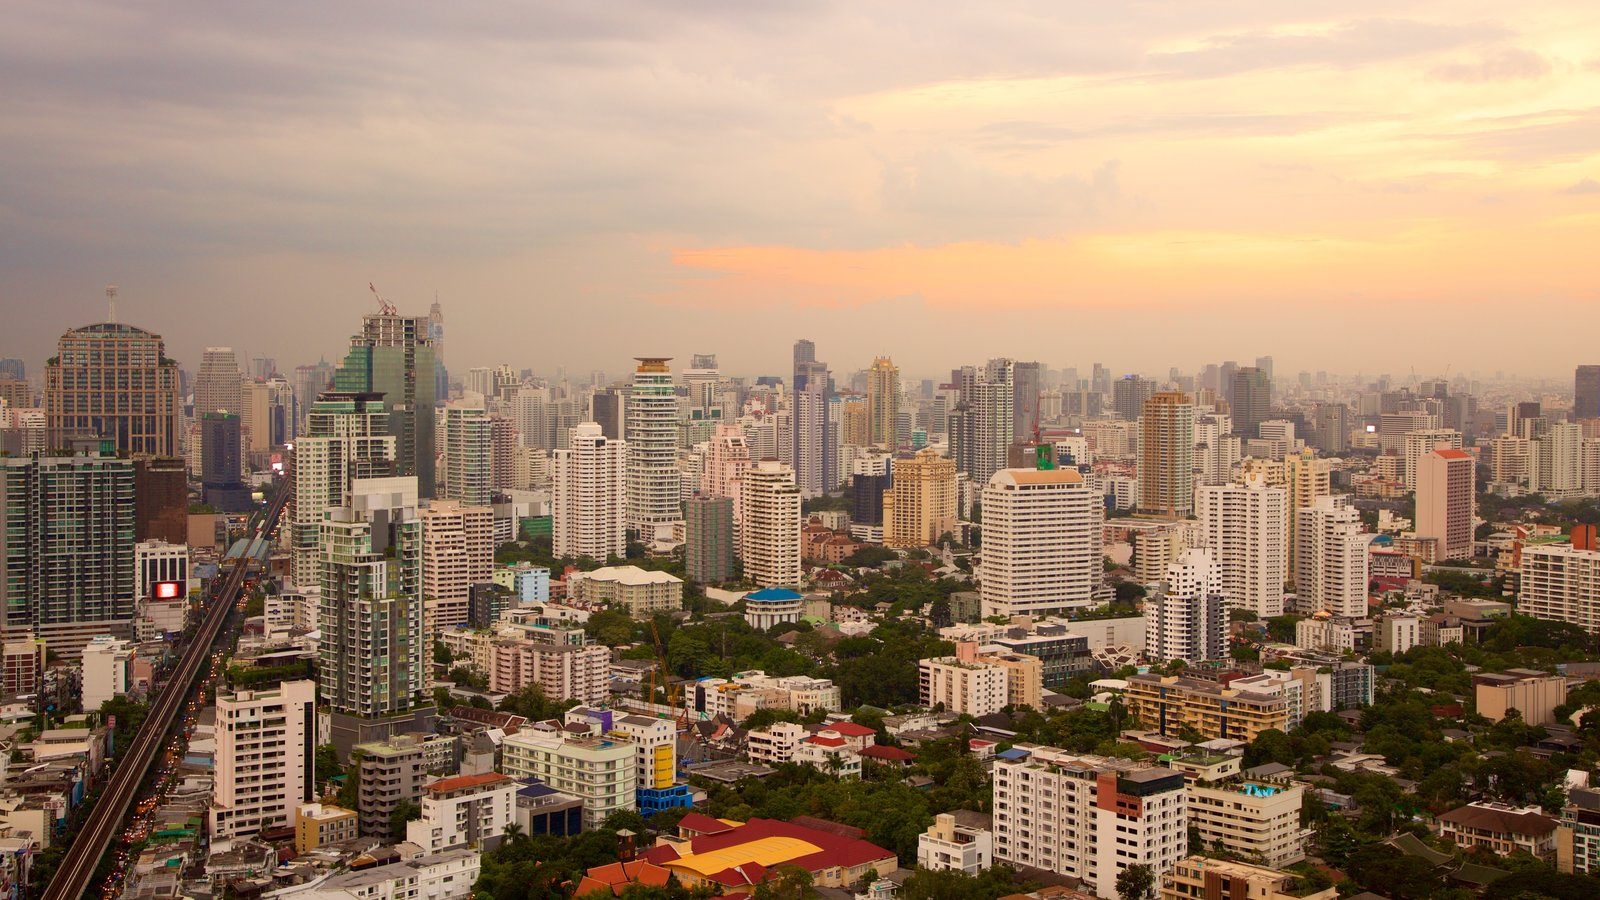 Sukhumvit which includes a sunset and a city